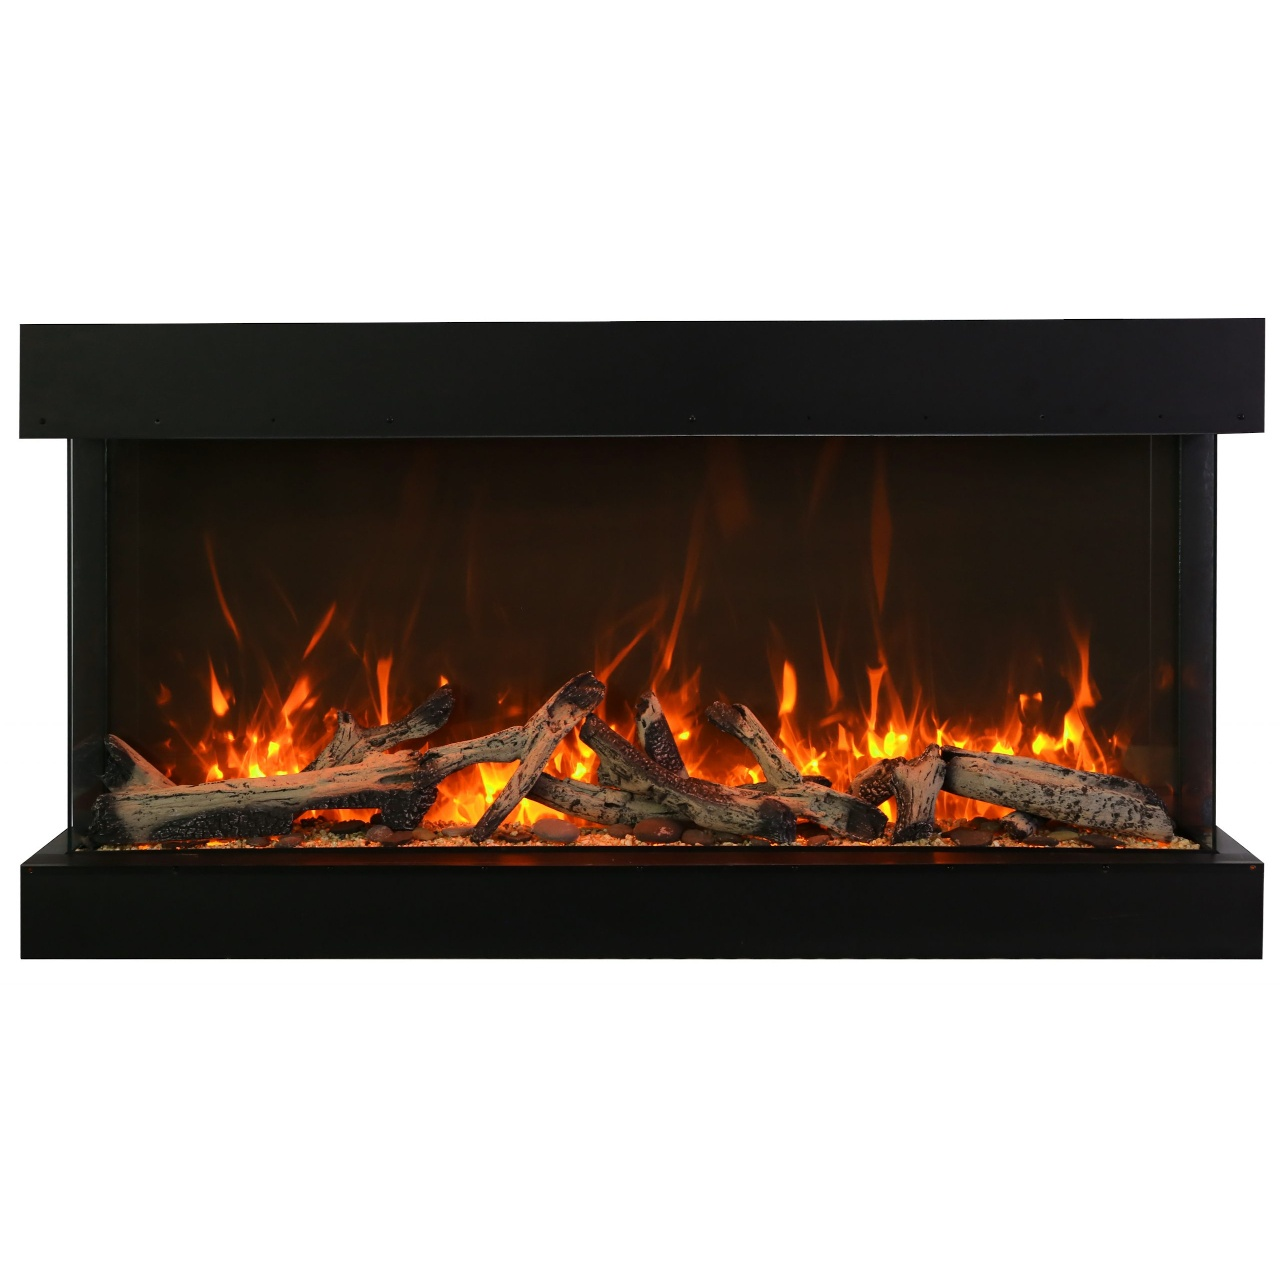 40-inch wide electric fireplace with extra tall glass view opening